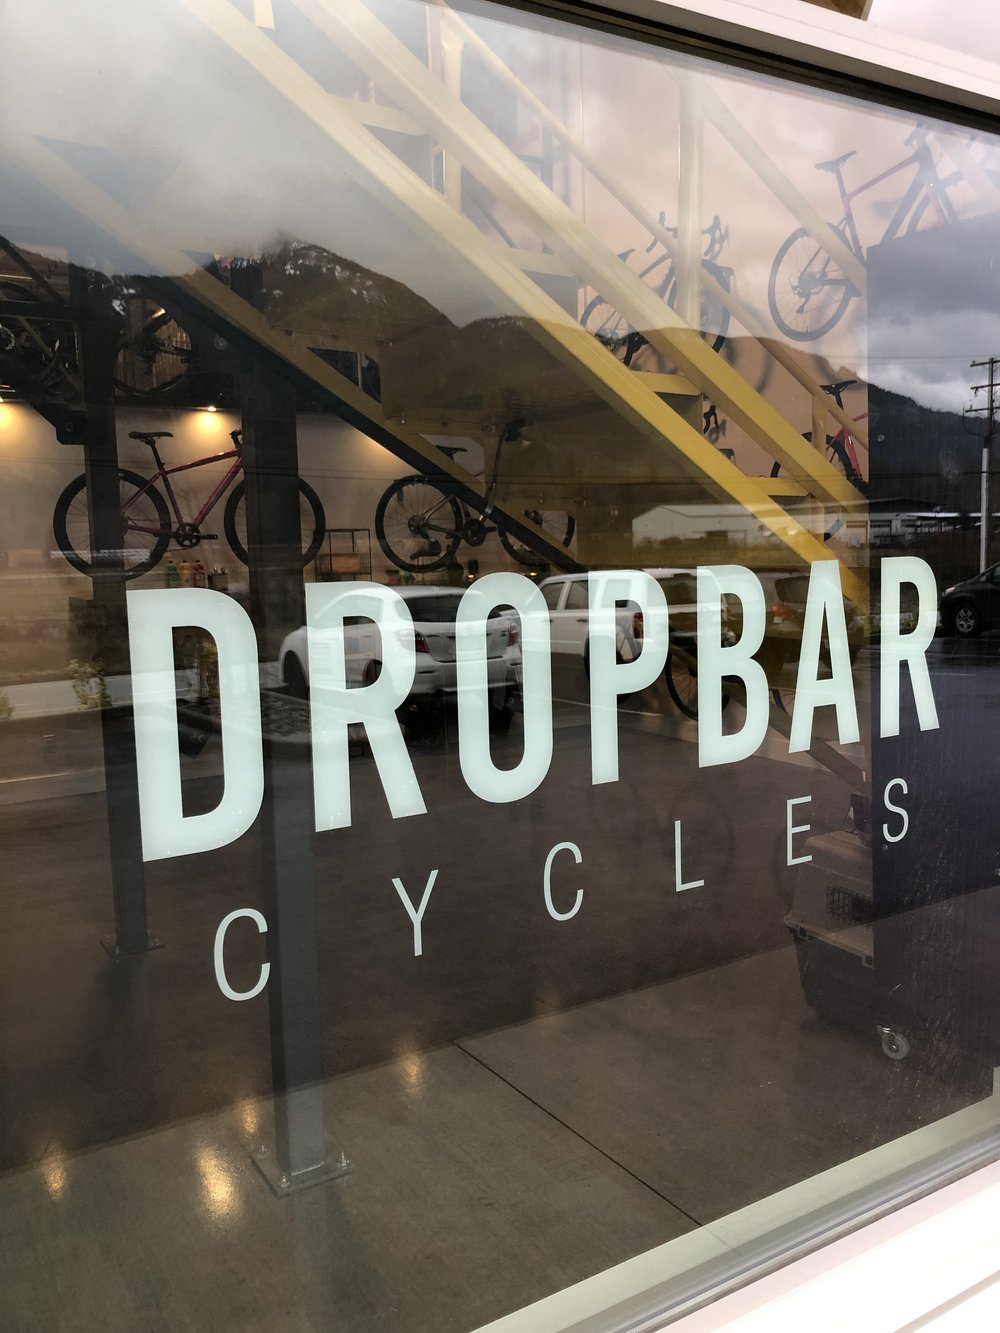 """We're Opening Feb. 1! - Drop Bar Cycles opens for all of your gravel, road, cyclocross and bike packing needs on February 1, 2019 at 10 AM. Drop by and say """"Hi""""!"""